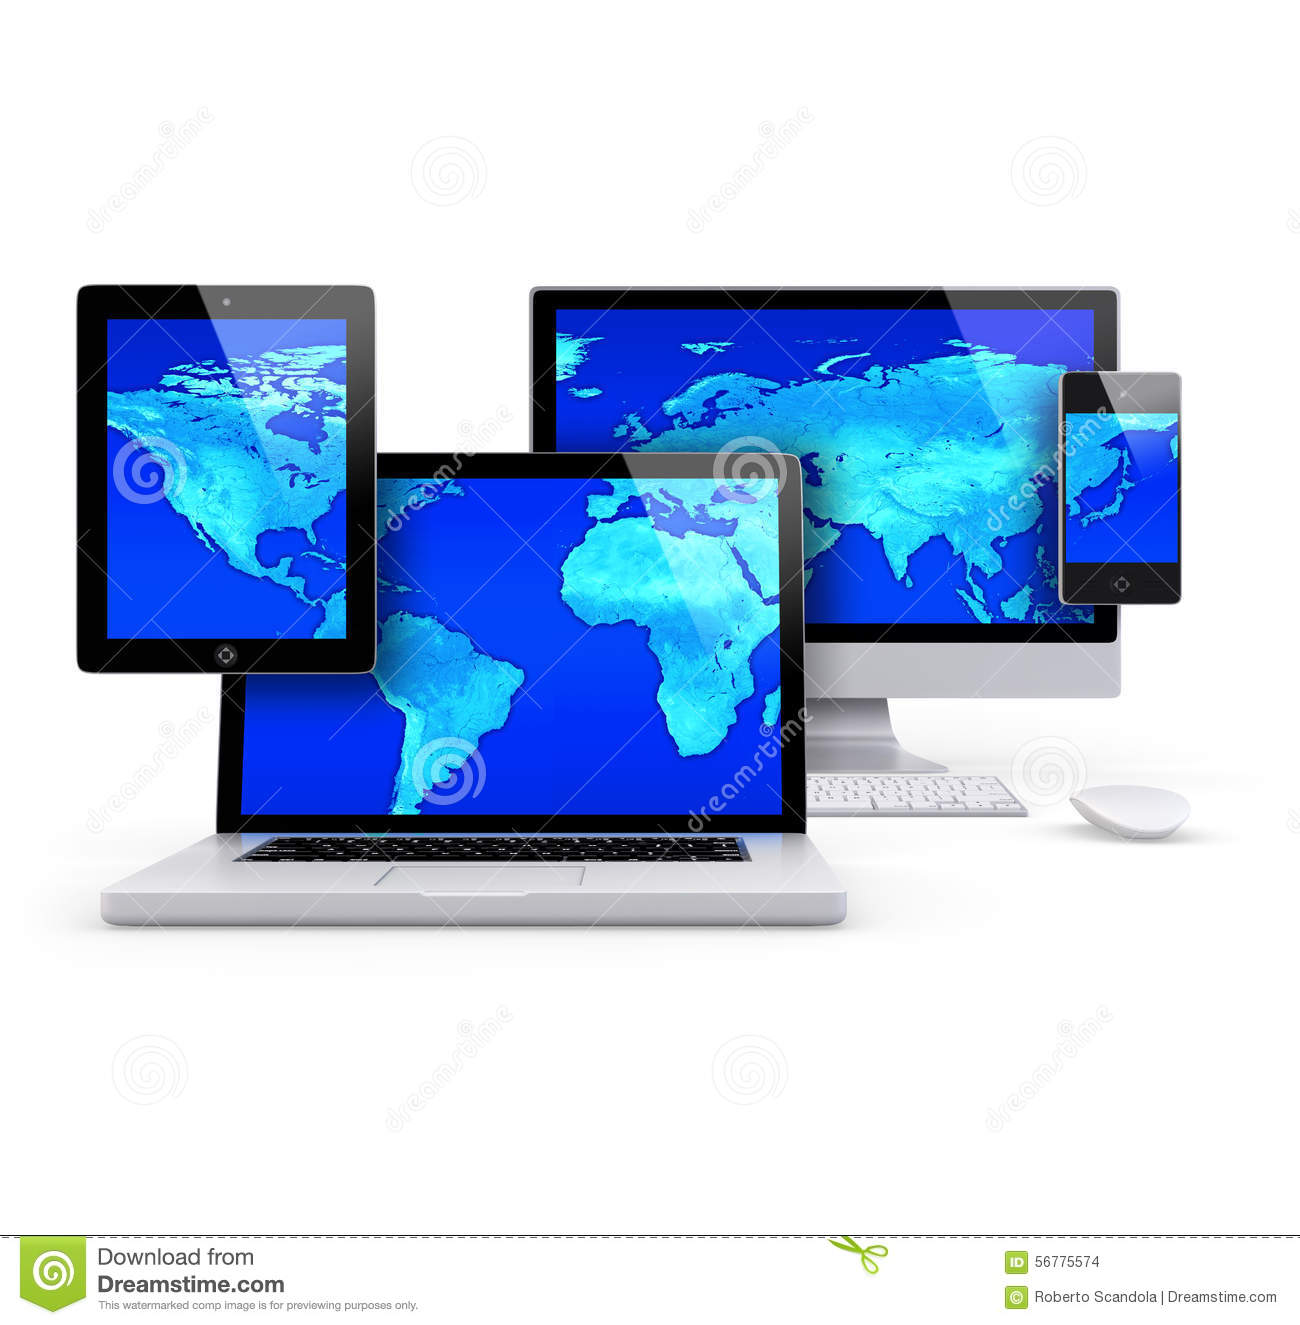 Computer and mobile group concept with blue world map stock computer and mobile group concept with blue world map royalty free illustration gumiabroncs Gallery